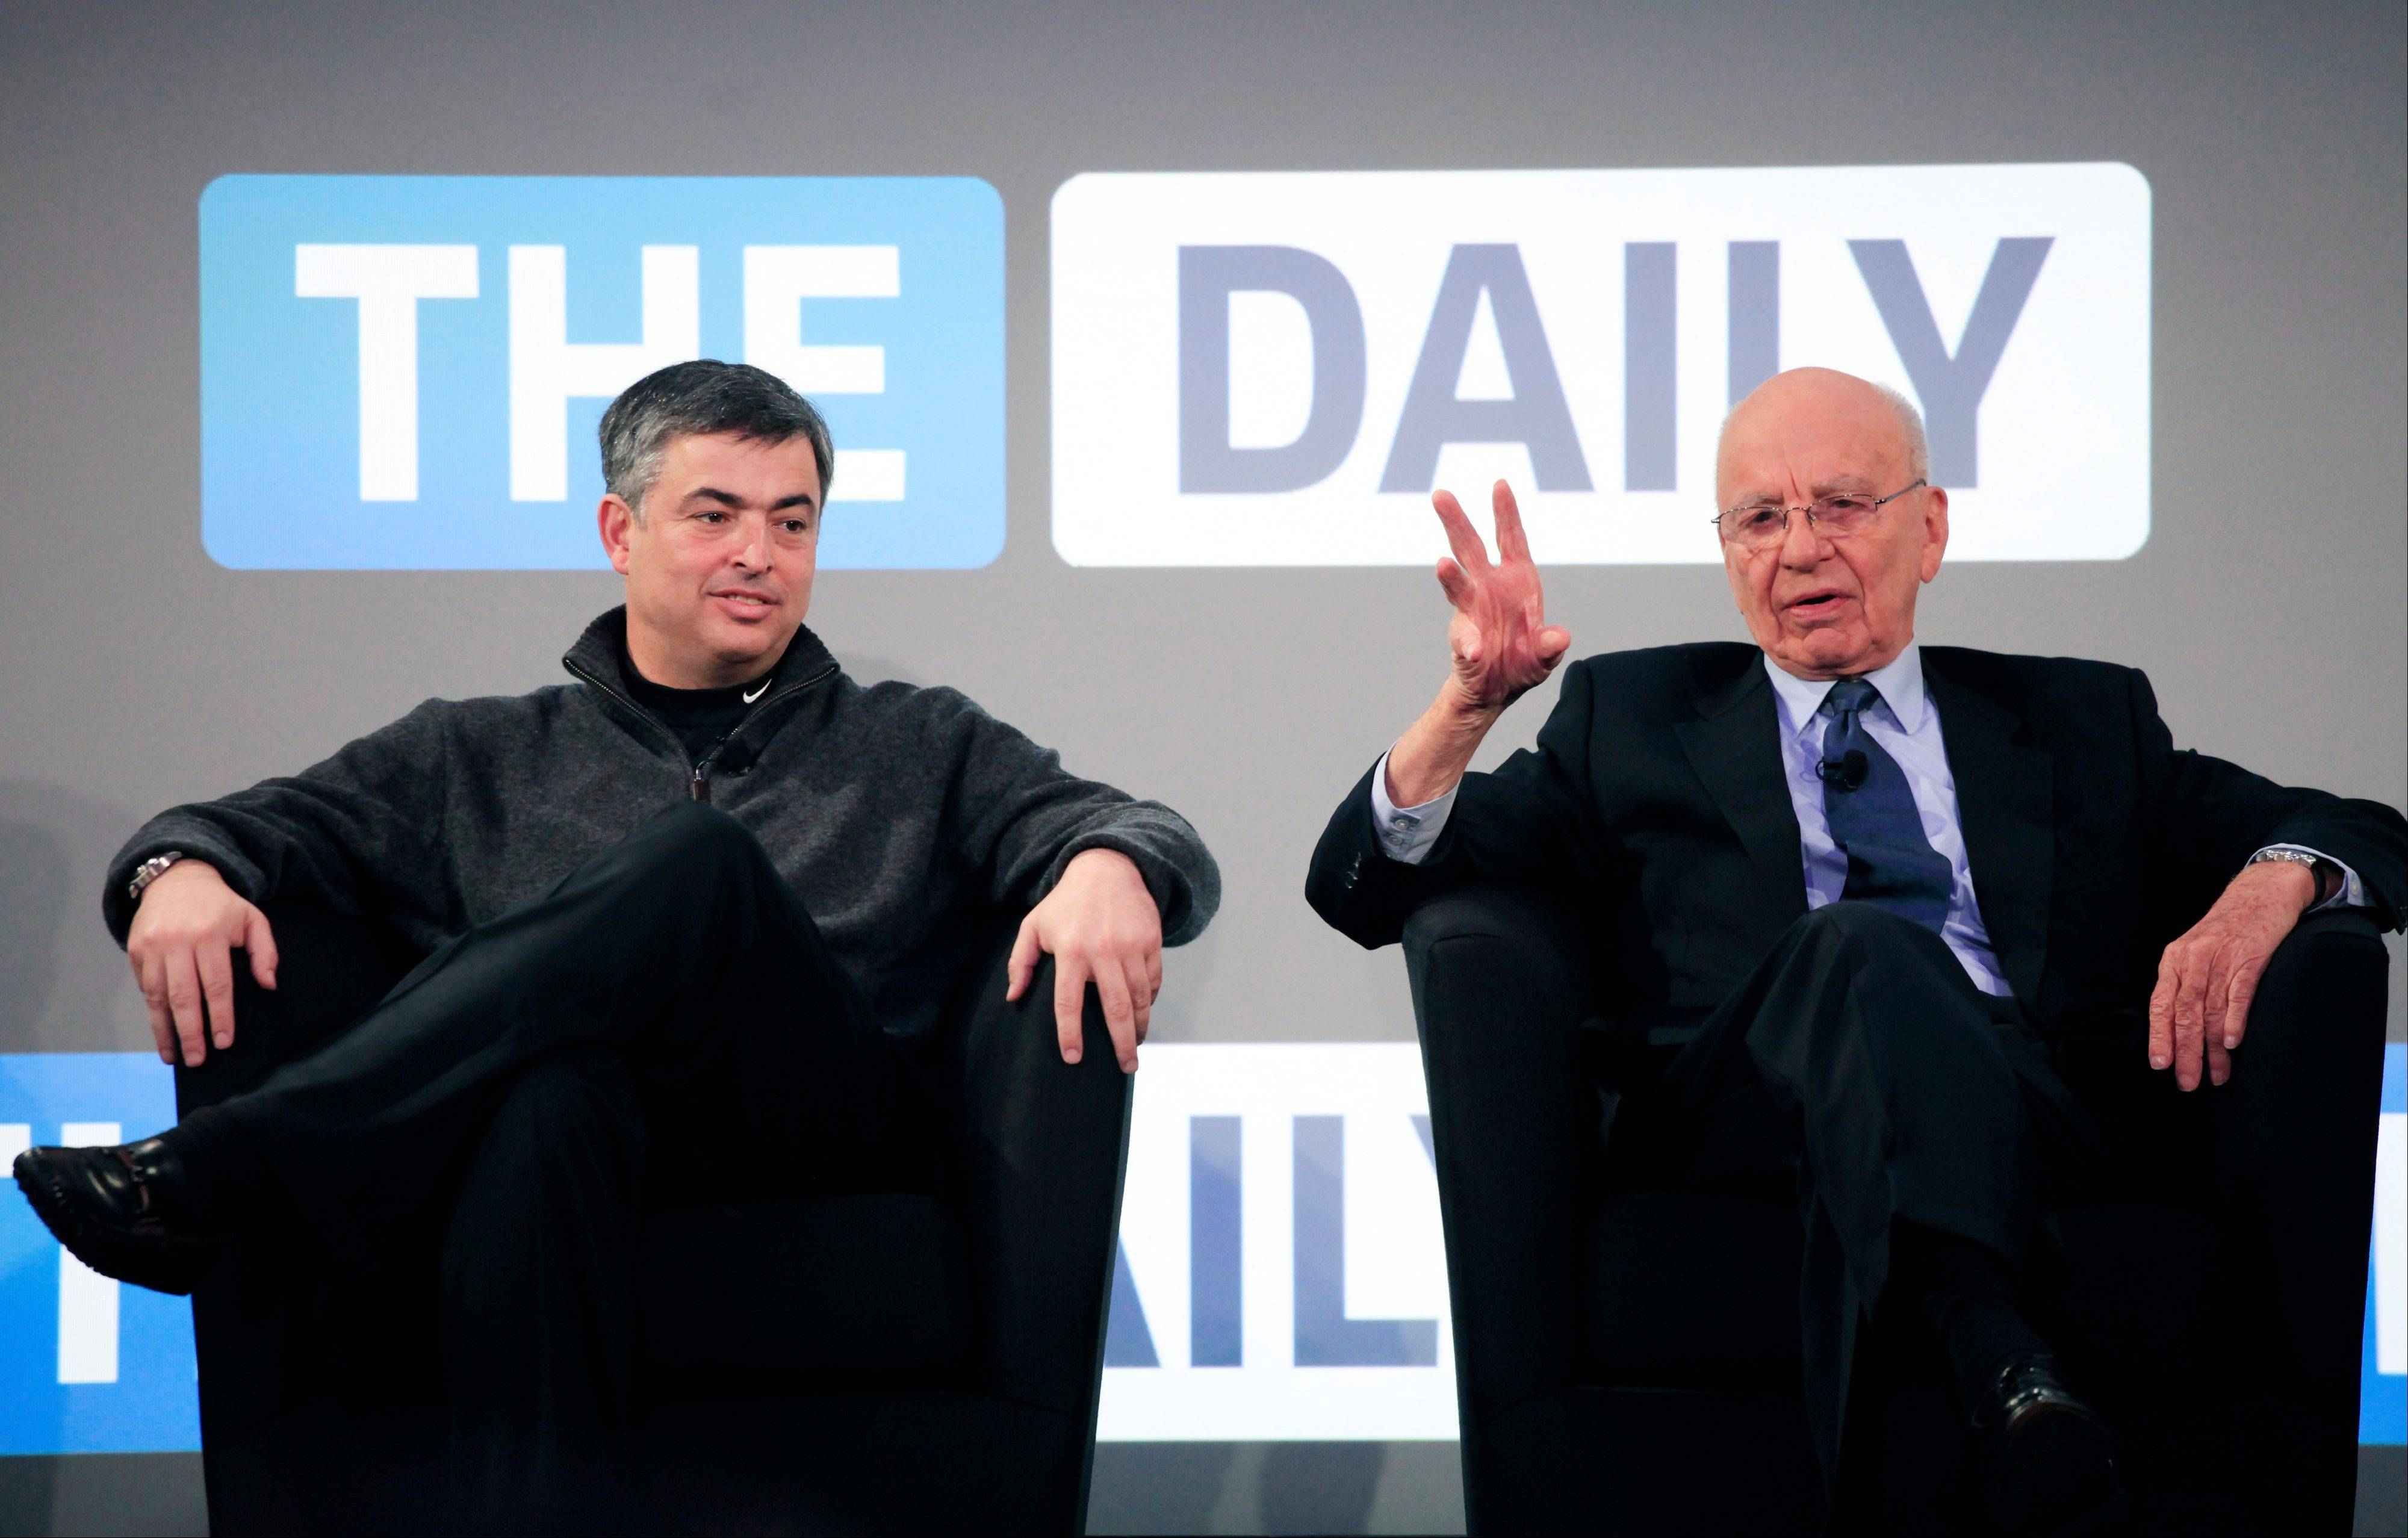 Rupert Murdoch, right, Chairman and CEO of News Corporation, and Eddy Cue, vice president of Apple, attend the launch of The Daily. News Corp. said it will cease publication of The Daily on Dec. 15. News Corp. had hoped The Daily would lure both paying subscribers and advertisers to a digital newspaper that included news, gossip and opinion.